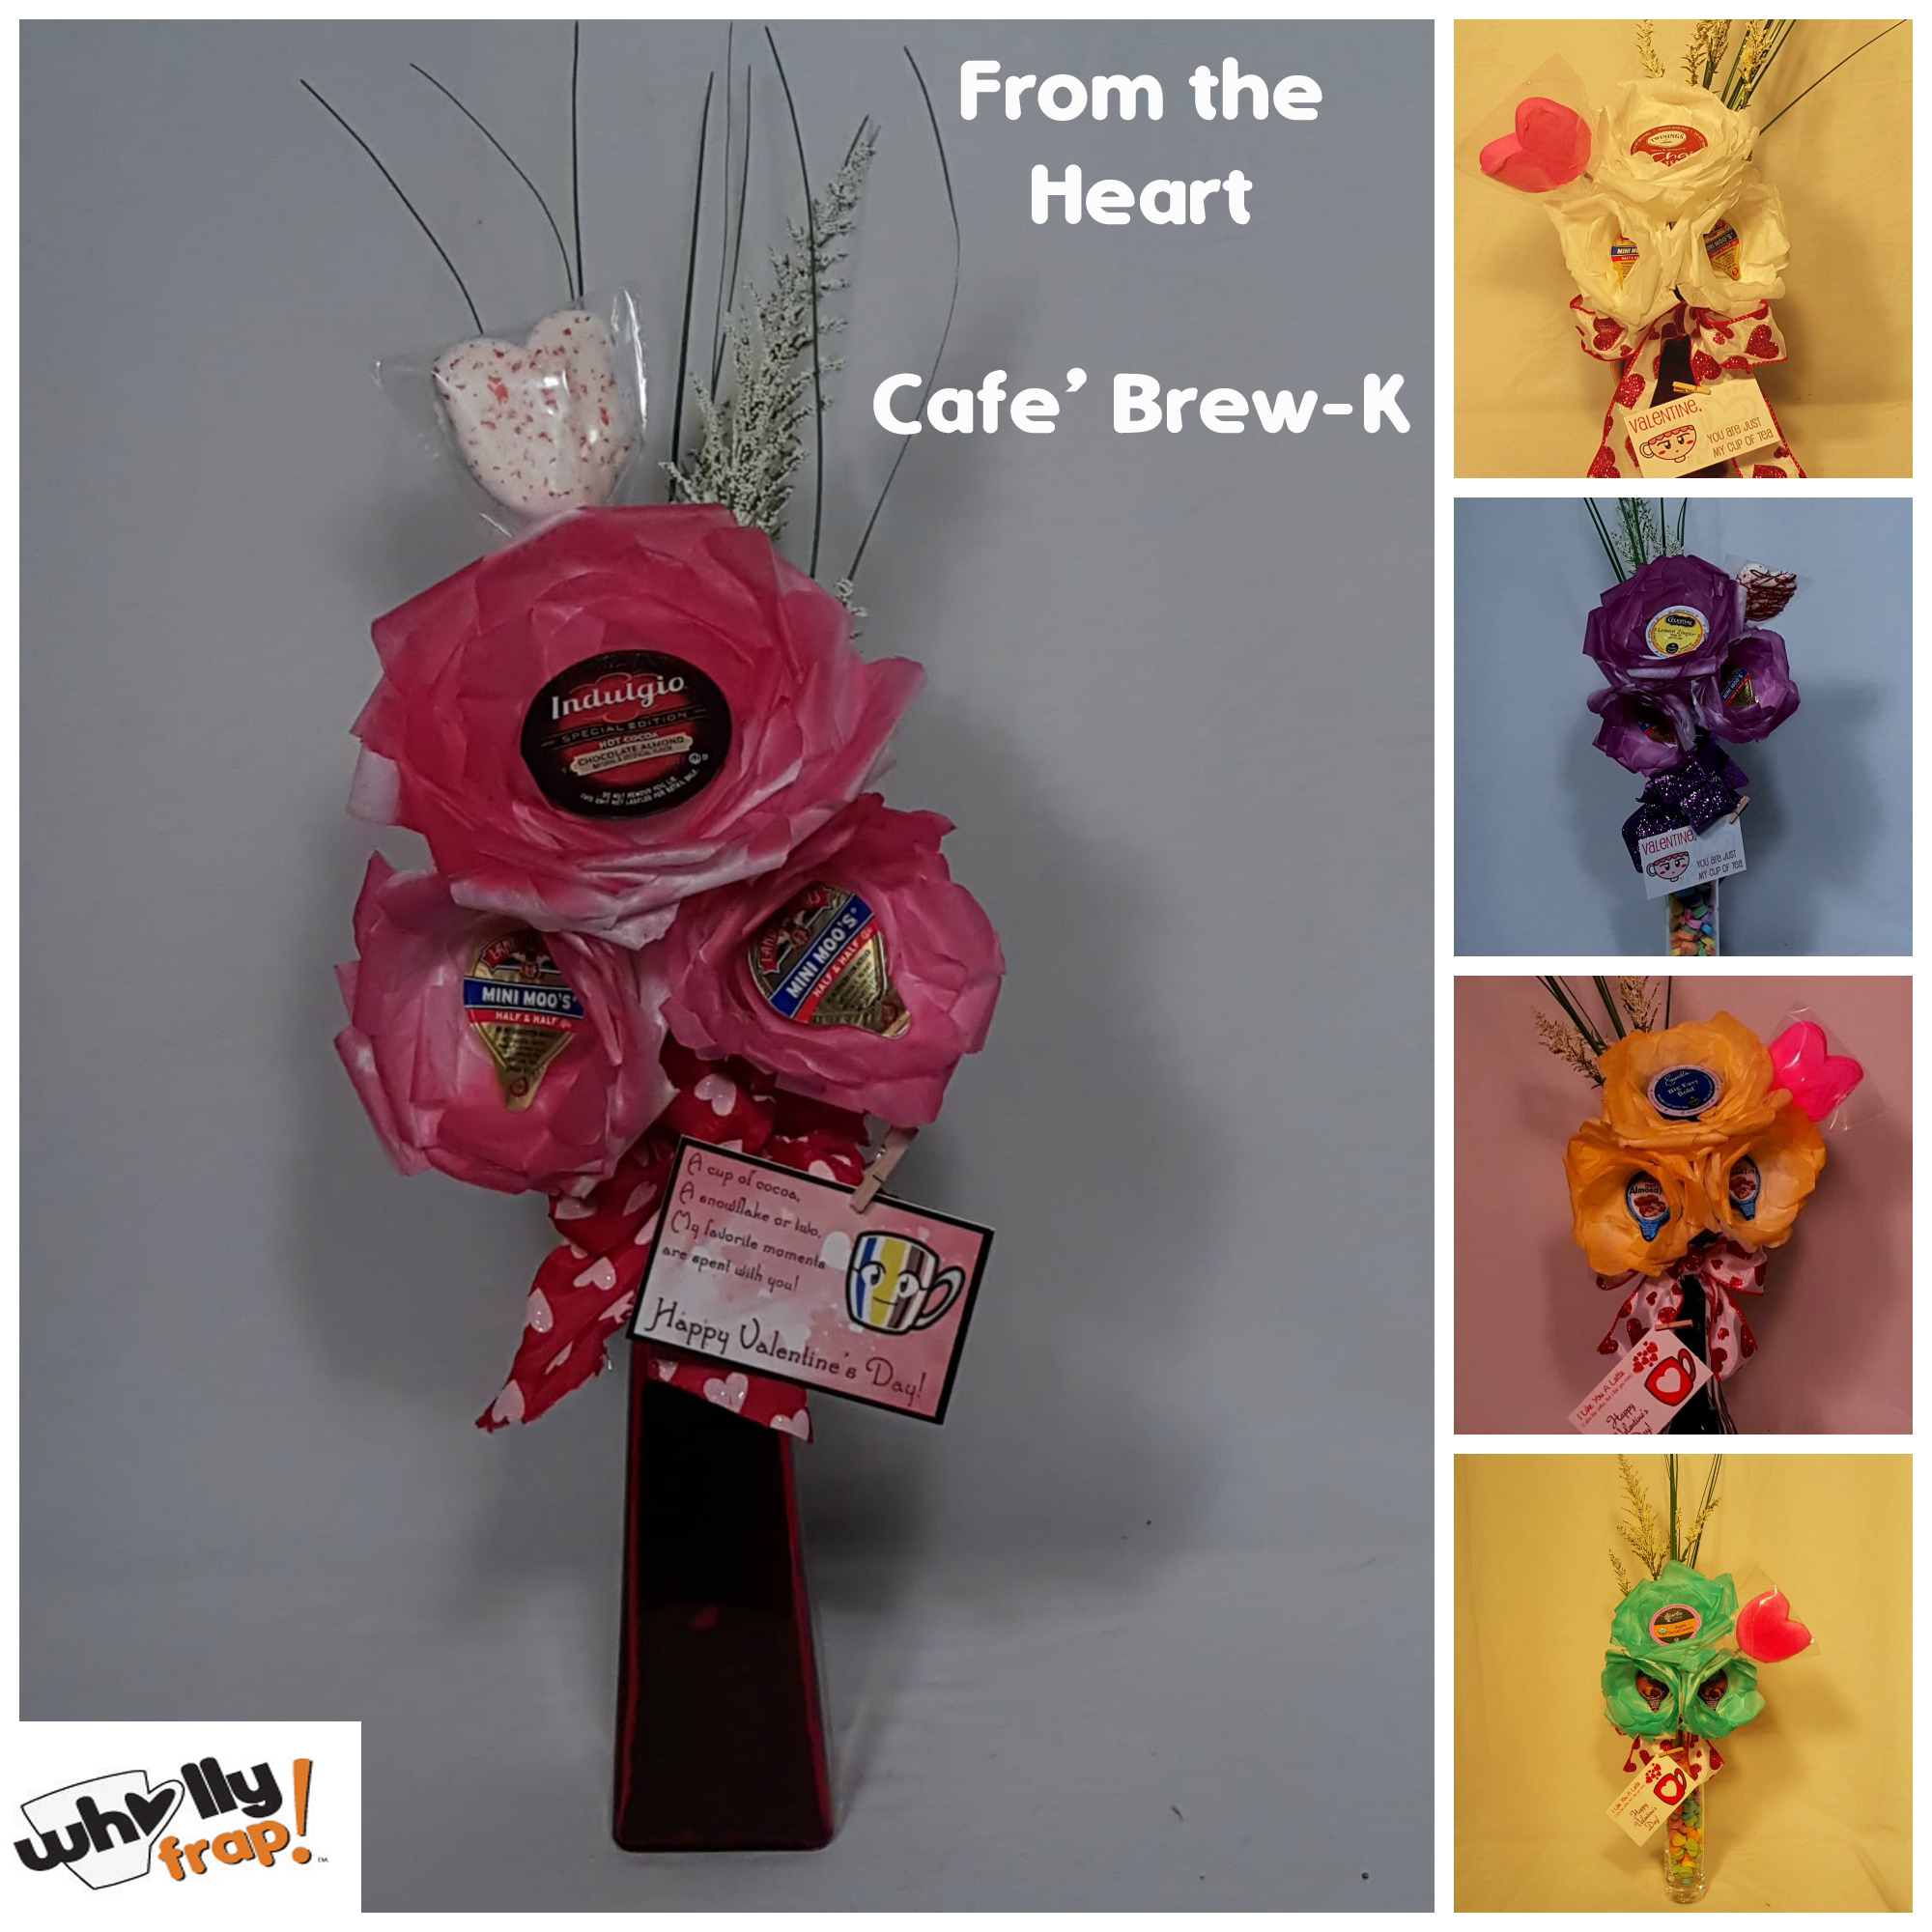 From The Heart Cafe' Brew-K